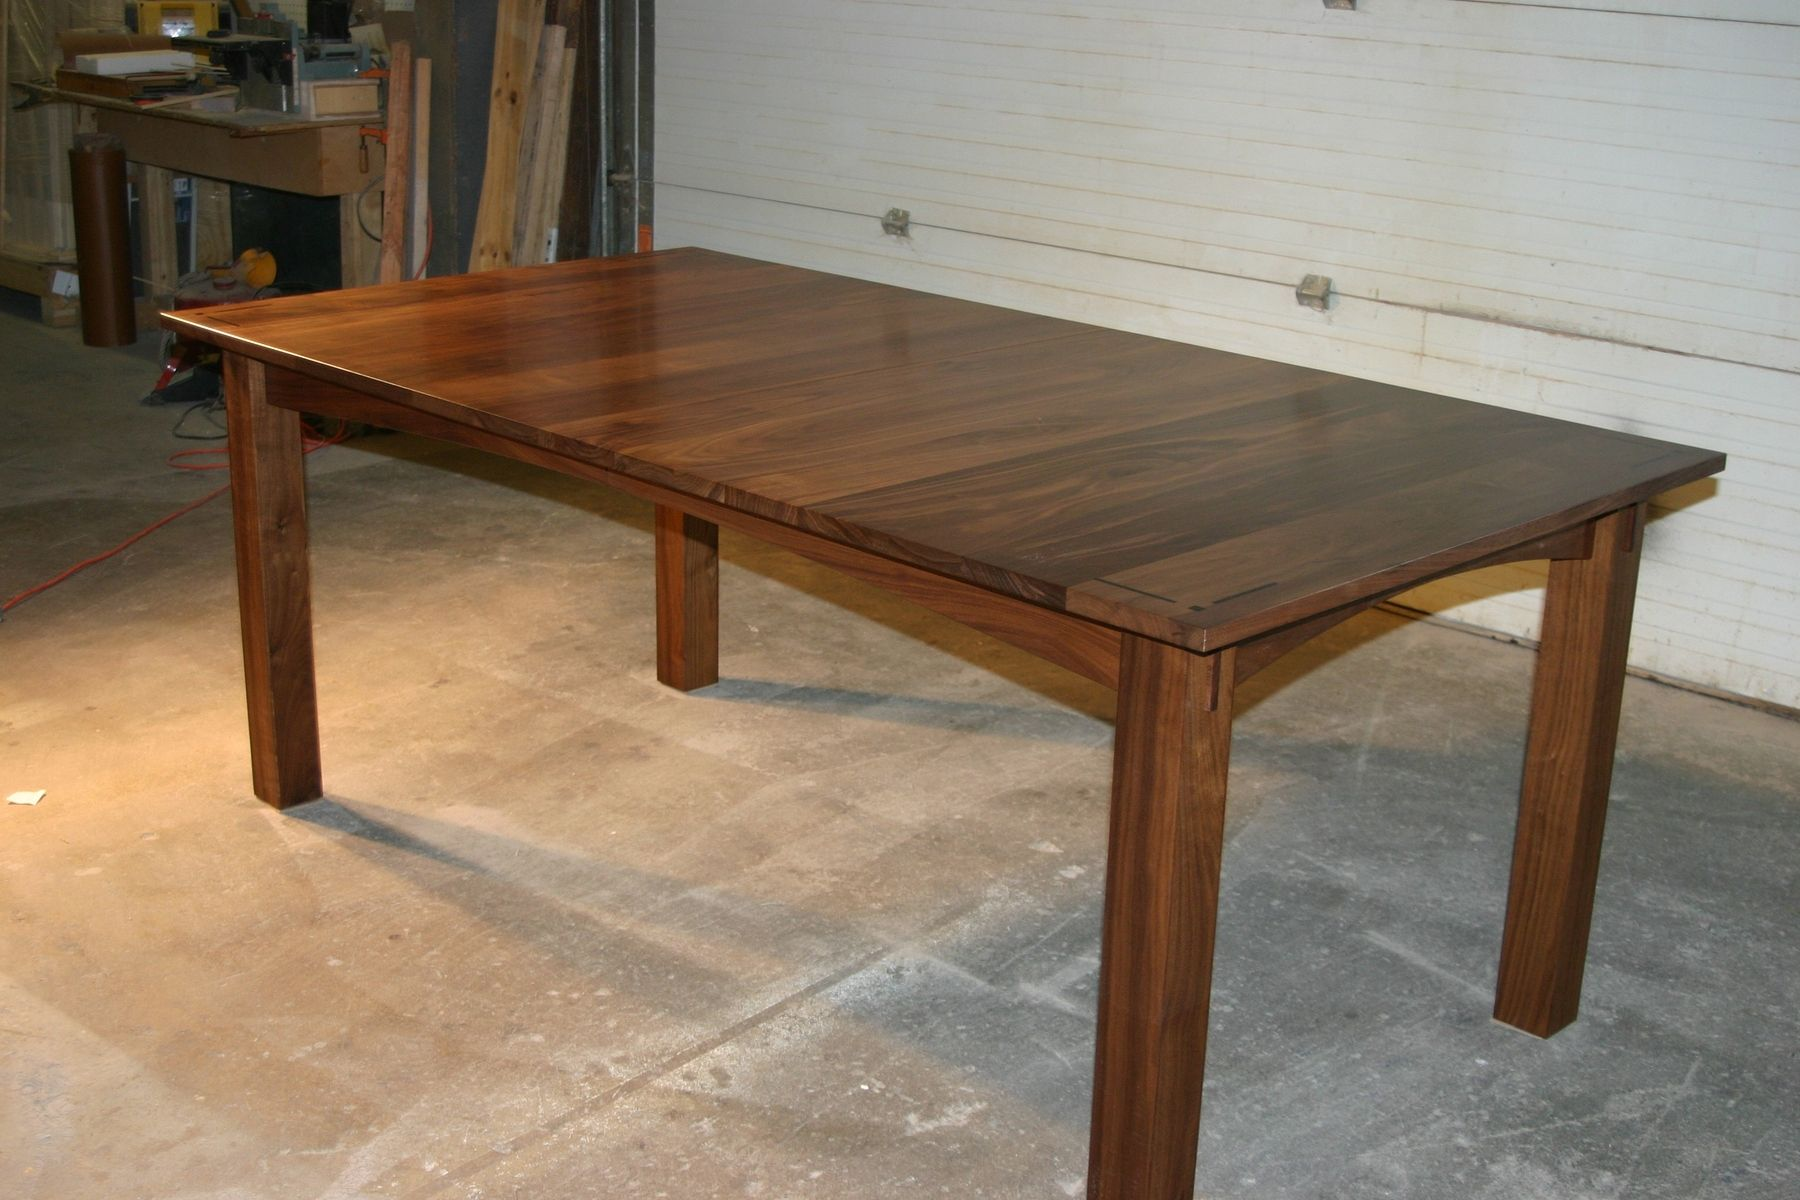 Handmade Walnut Dining Table By Canton Studio